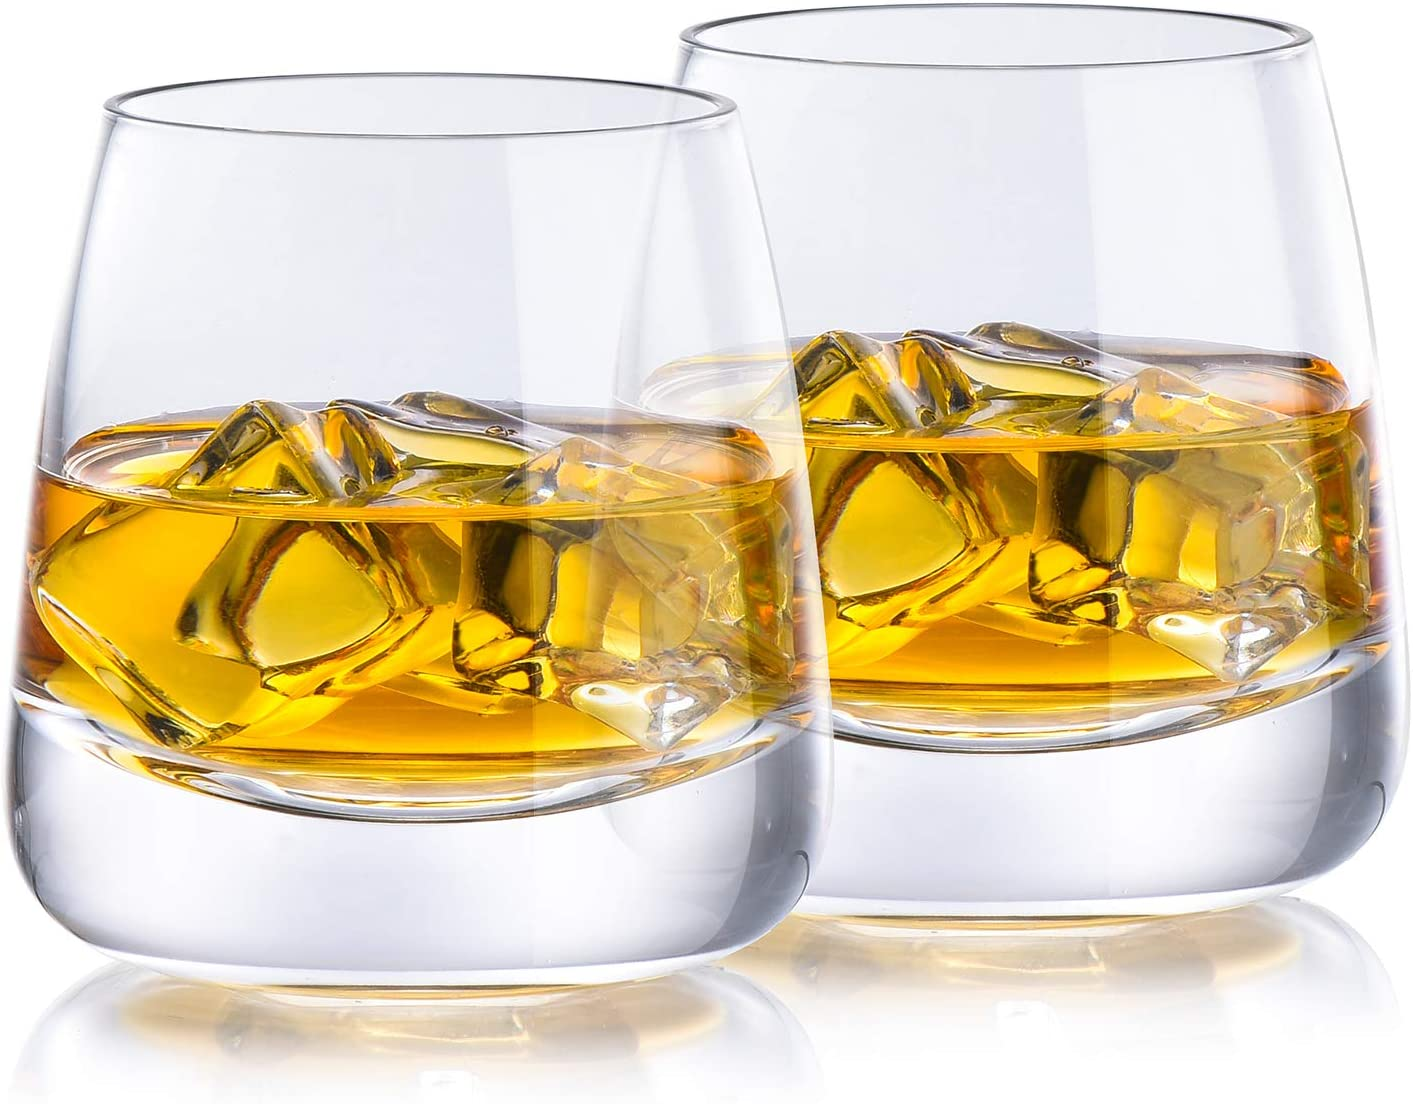 Whiskey Glass Yurnero Old Fashioned Rocks Bourbon Glass set of 2 Thick Weighted Bottom Glass for Whiskey, Hand Blown Scotch Glass for Old Fashioned Glasses, Bourbon,Manhattans,Cocktails or Bar Drinks